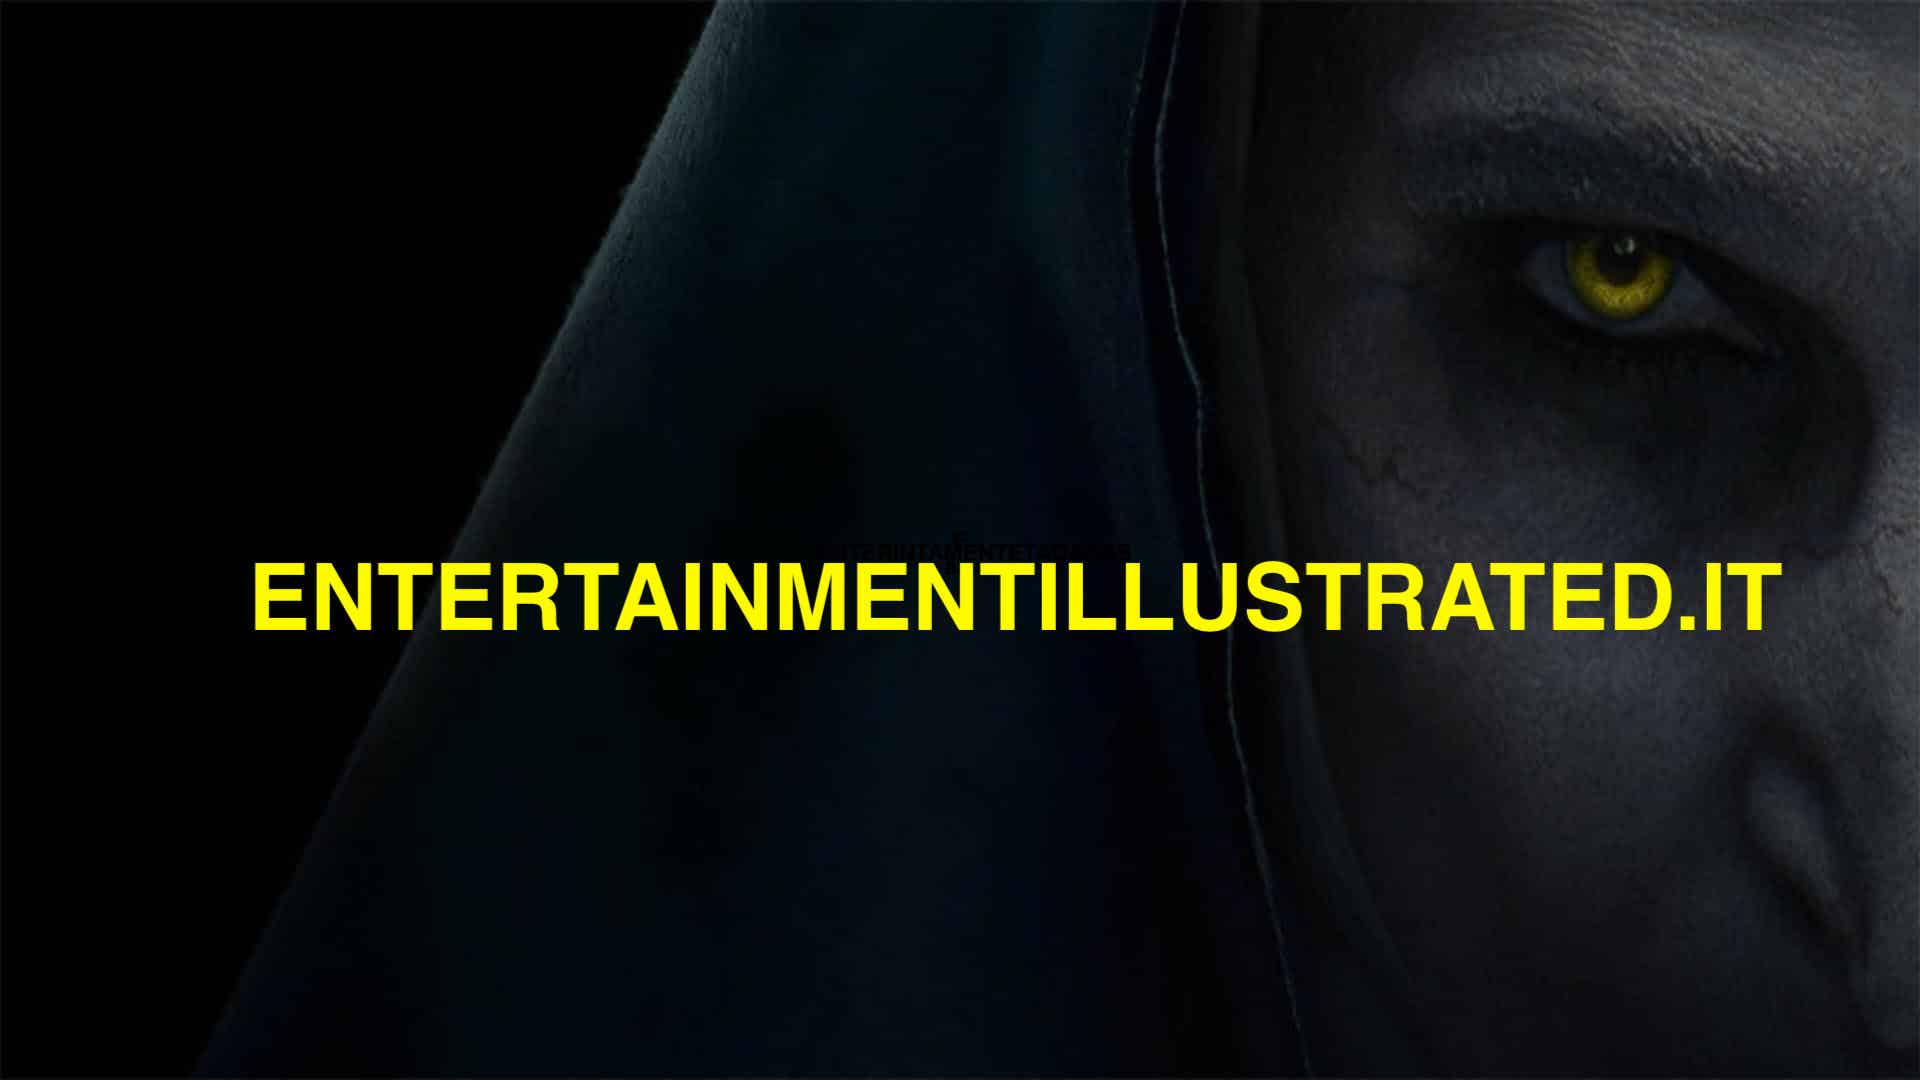 Entertainment illustrated